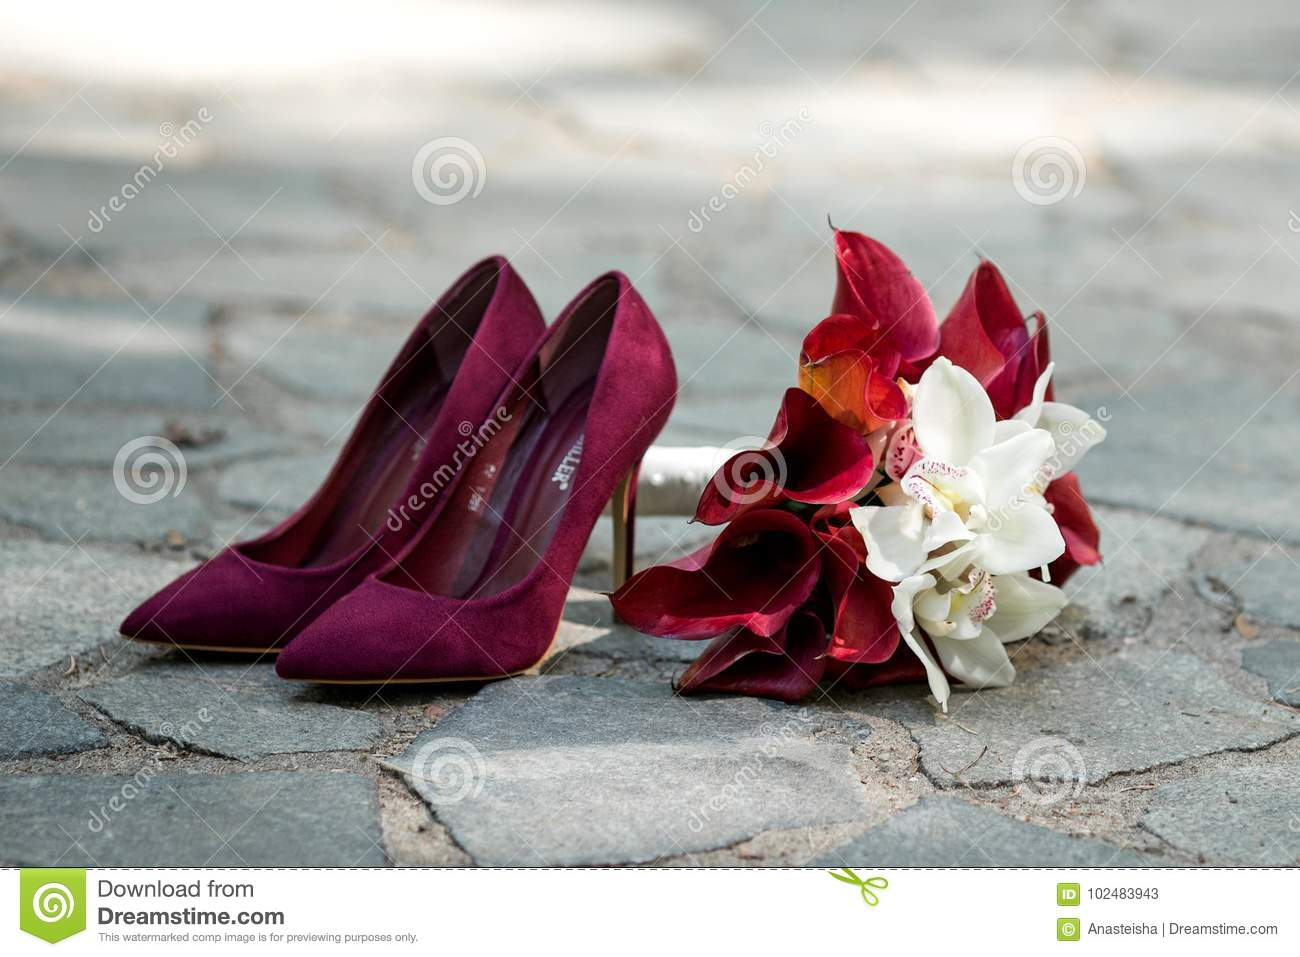 Wedding details red shoes wedding bouquet with burgundy and white red shoes wedding bouquet with burgundy and white flowers mightylinksfo